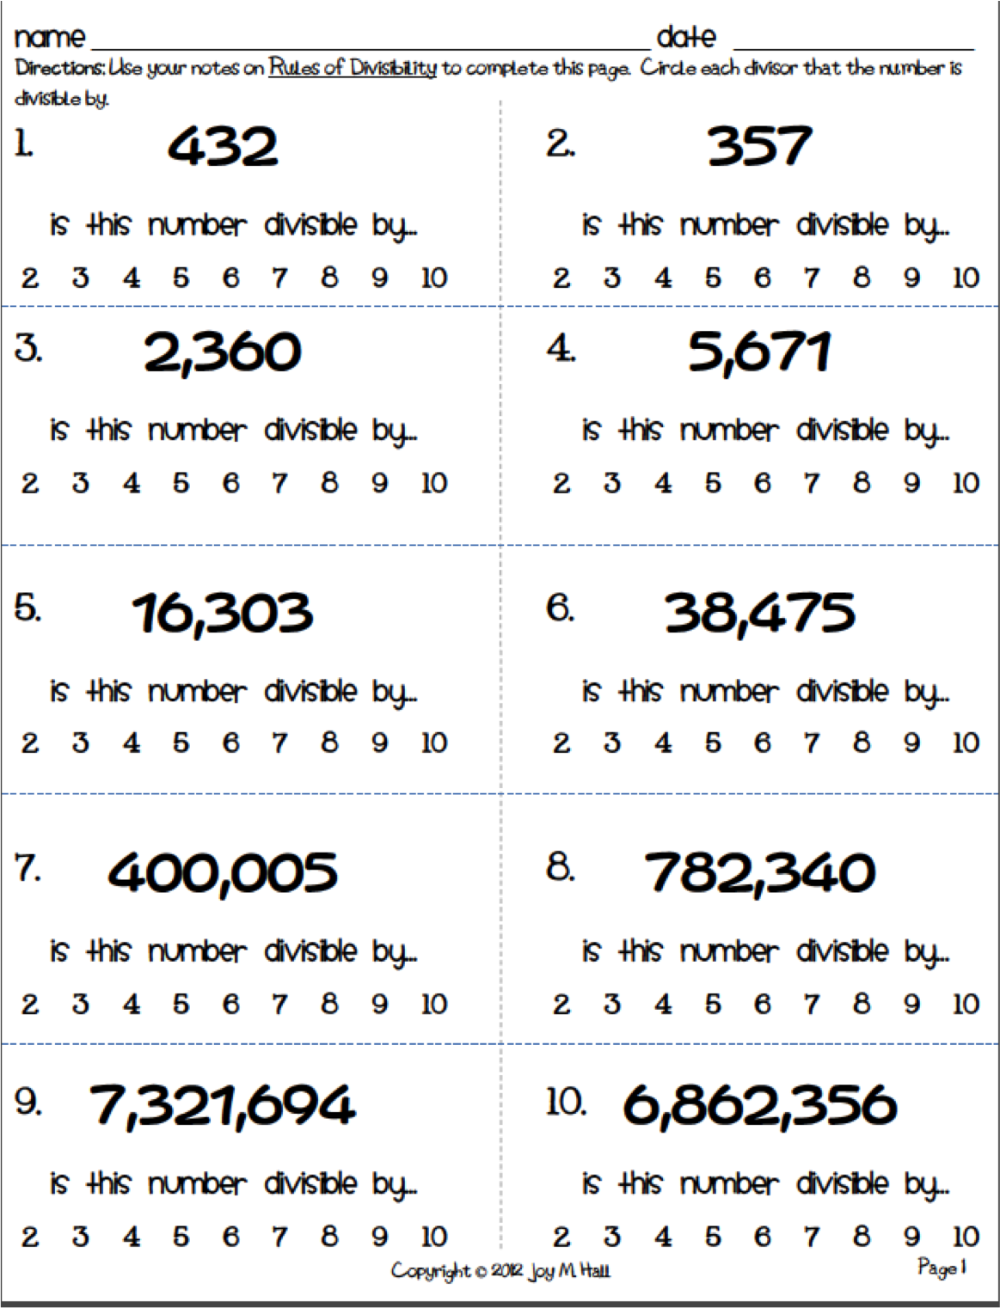 Divisibility Rules Worksheet Pdf Divisibility rules